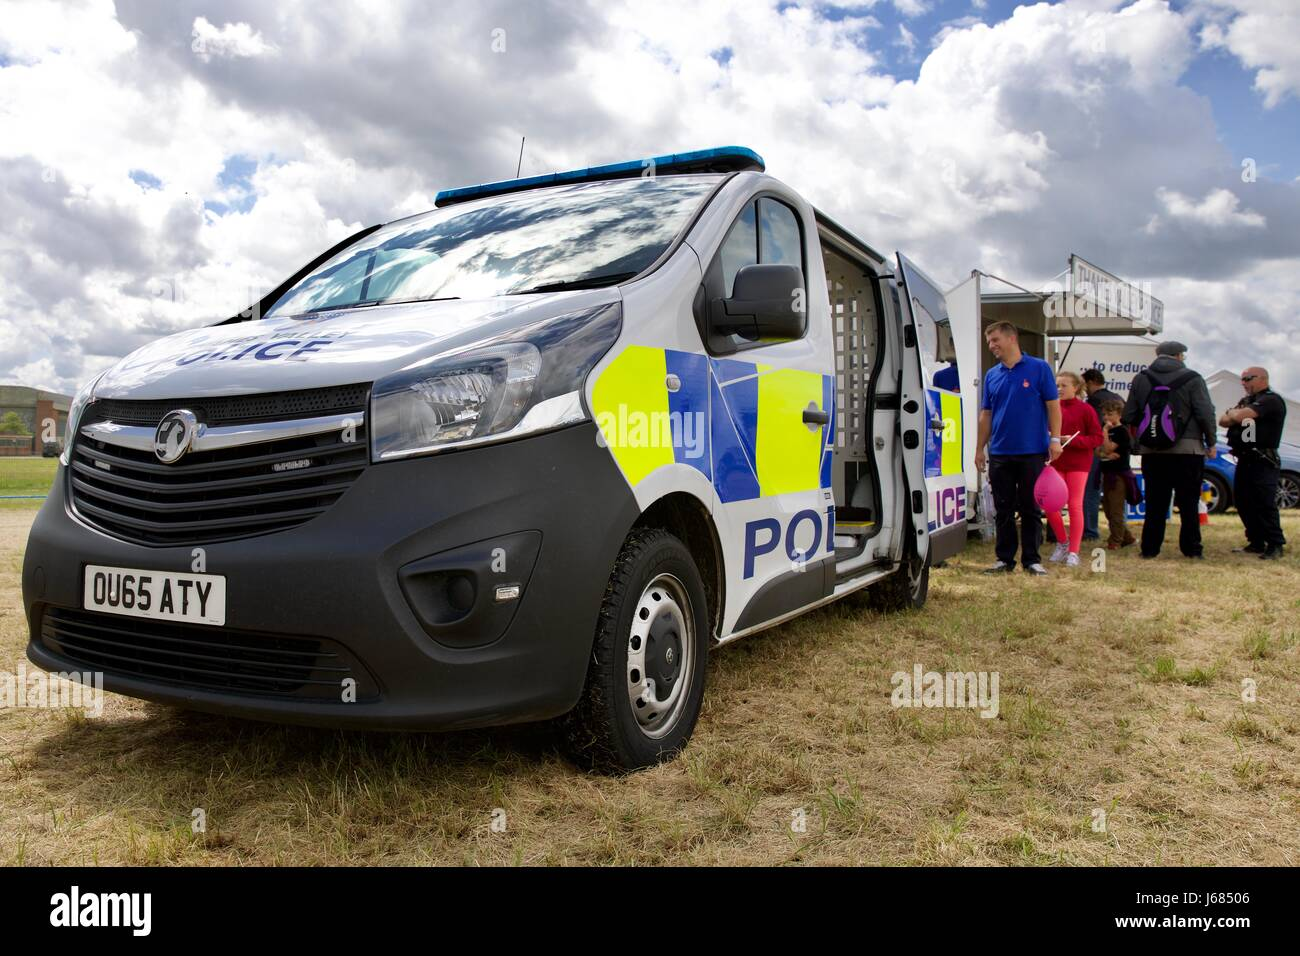 Thames Valley Police van - Stock Image